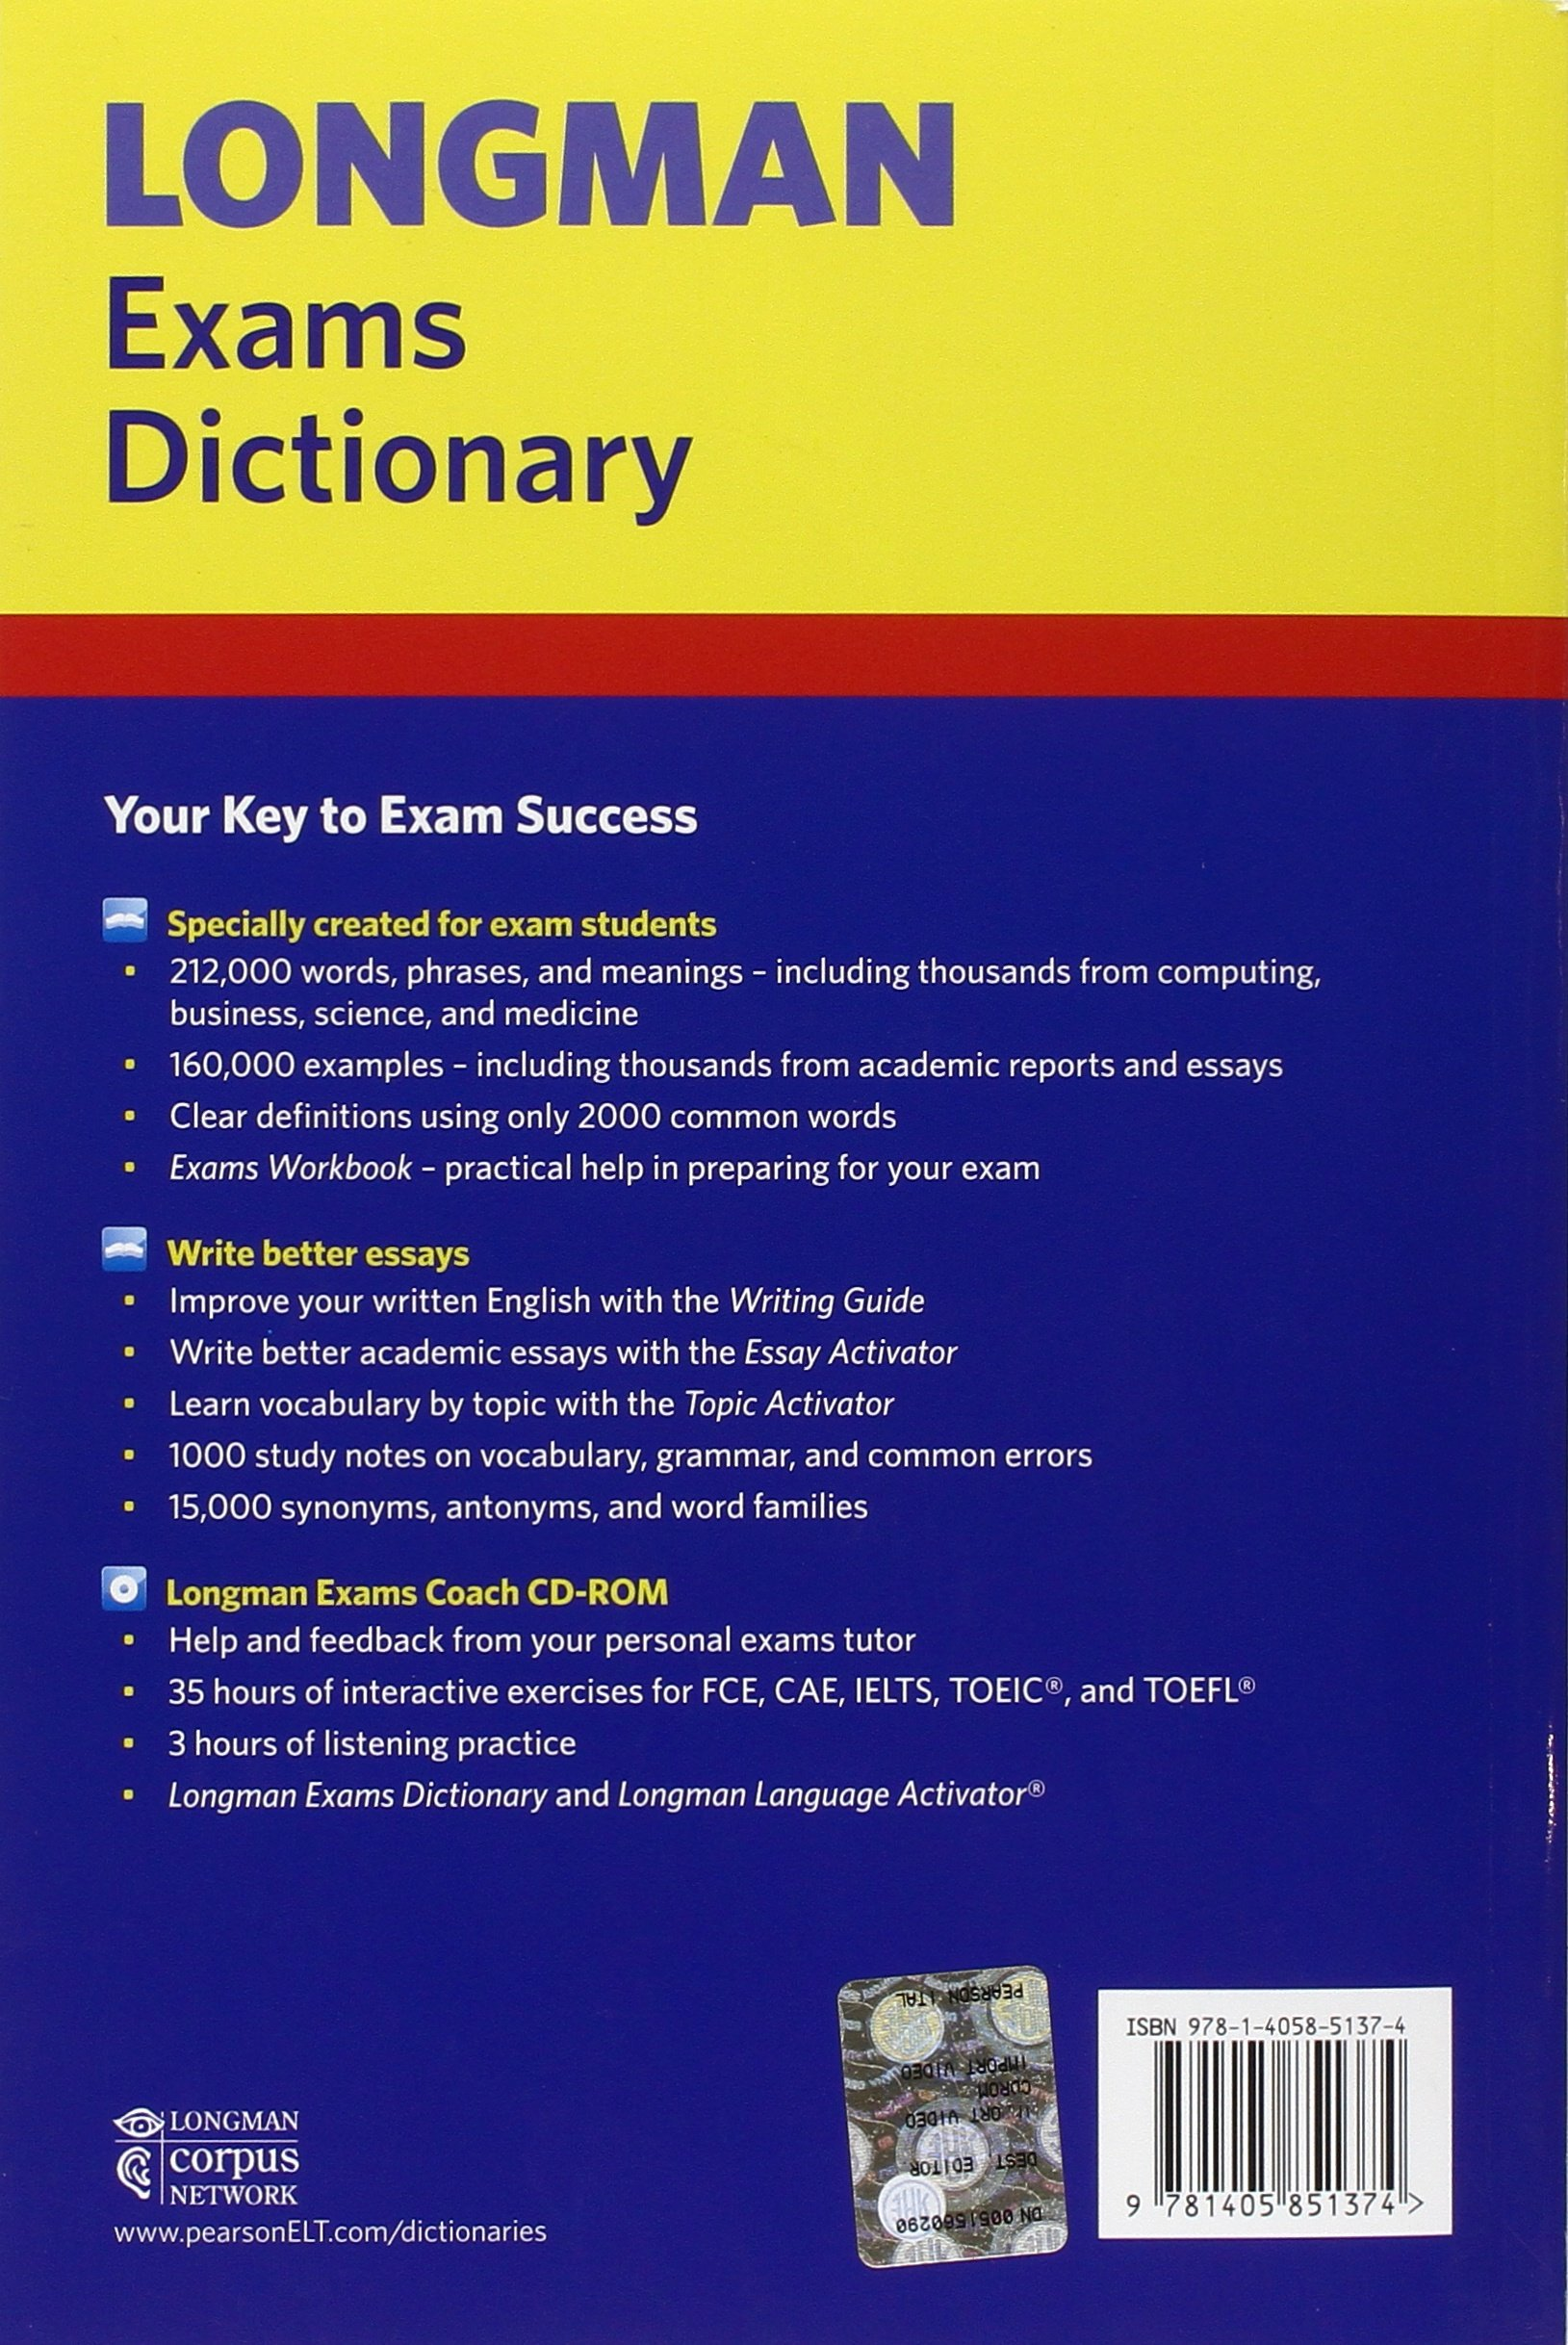 longman exams dictionary update l exams dictionary amazon co longman exams dictionary update l exams dictionary amazon co uk pearson education 9781405851374 books